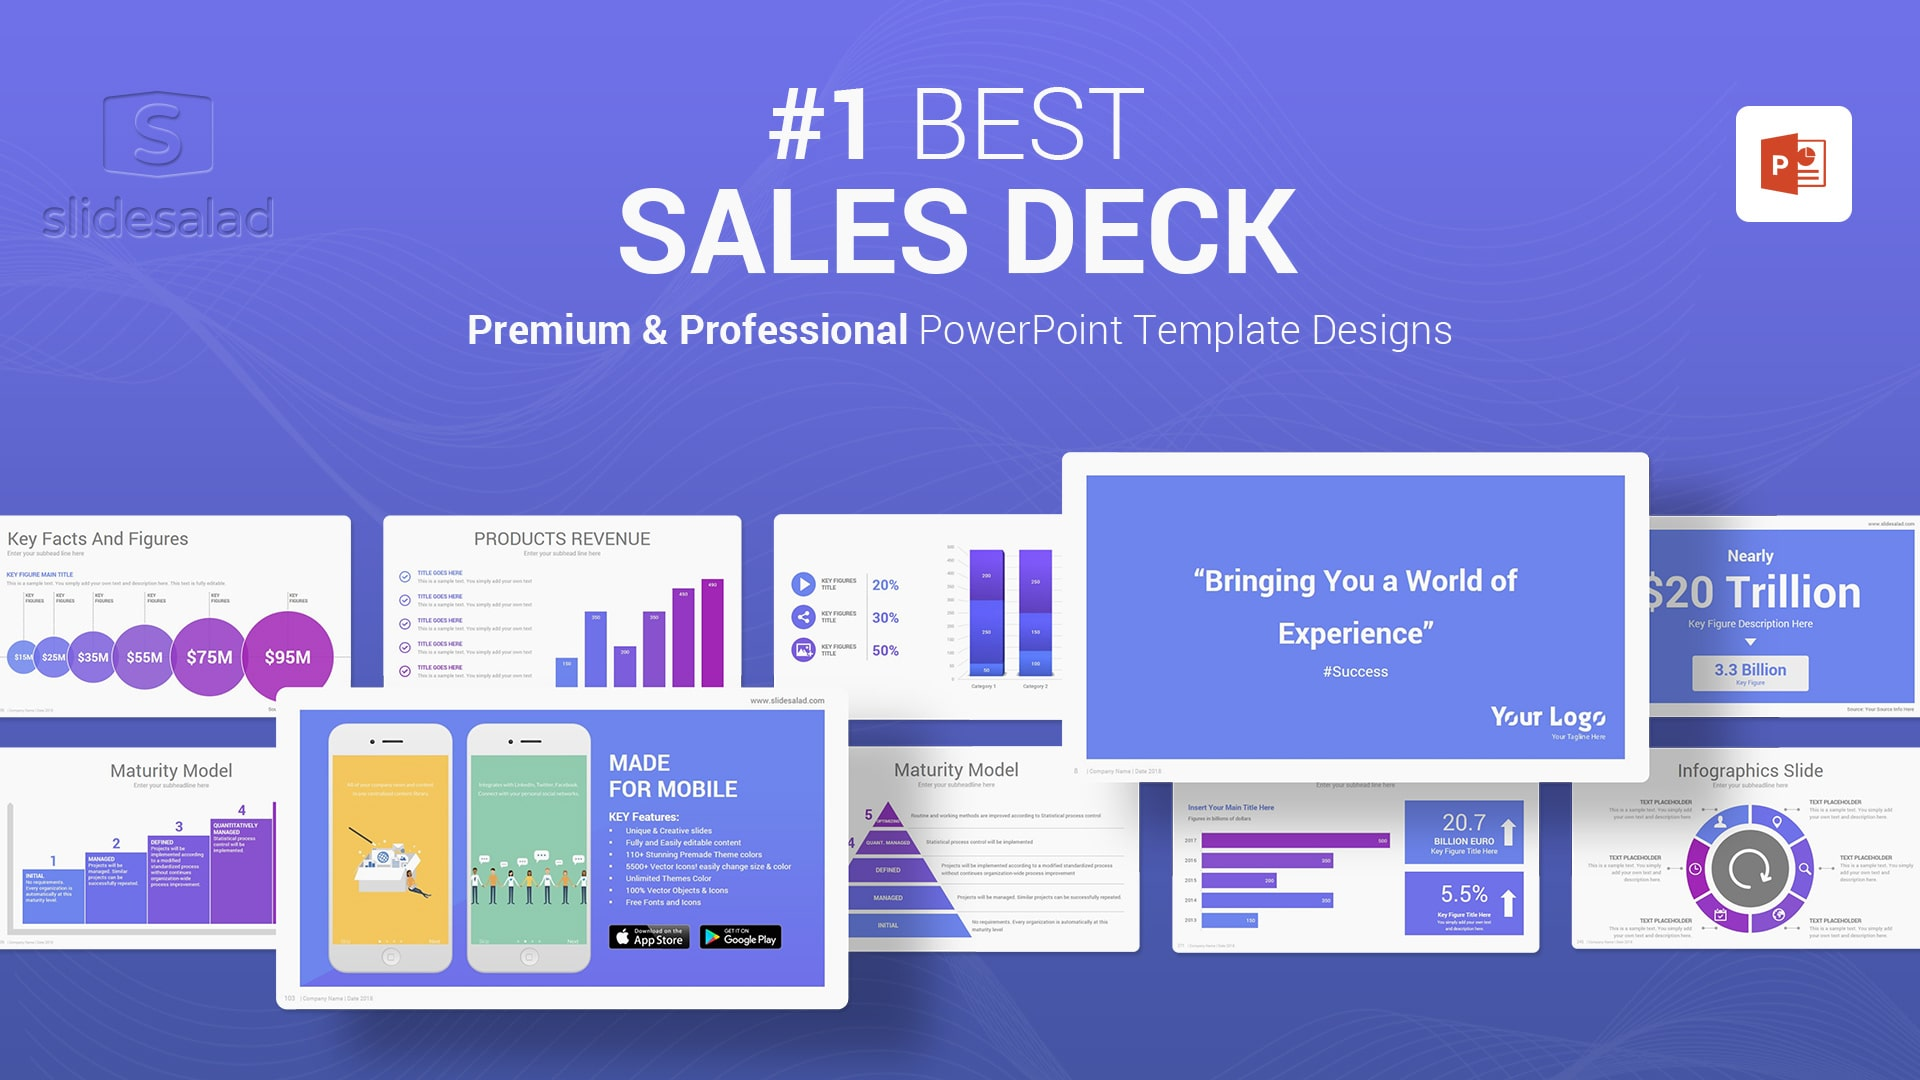 Best Sales Deck PowerPoint Templates - Top Webinar Slides Template